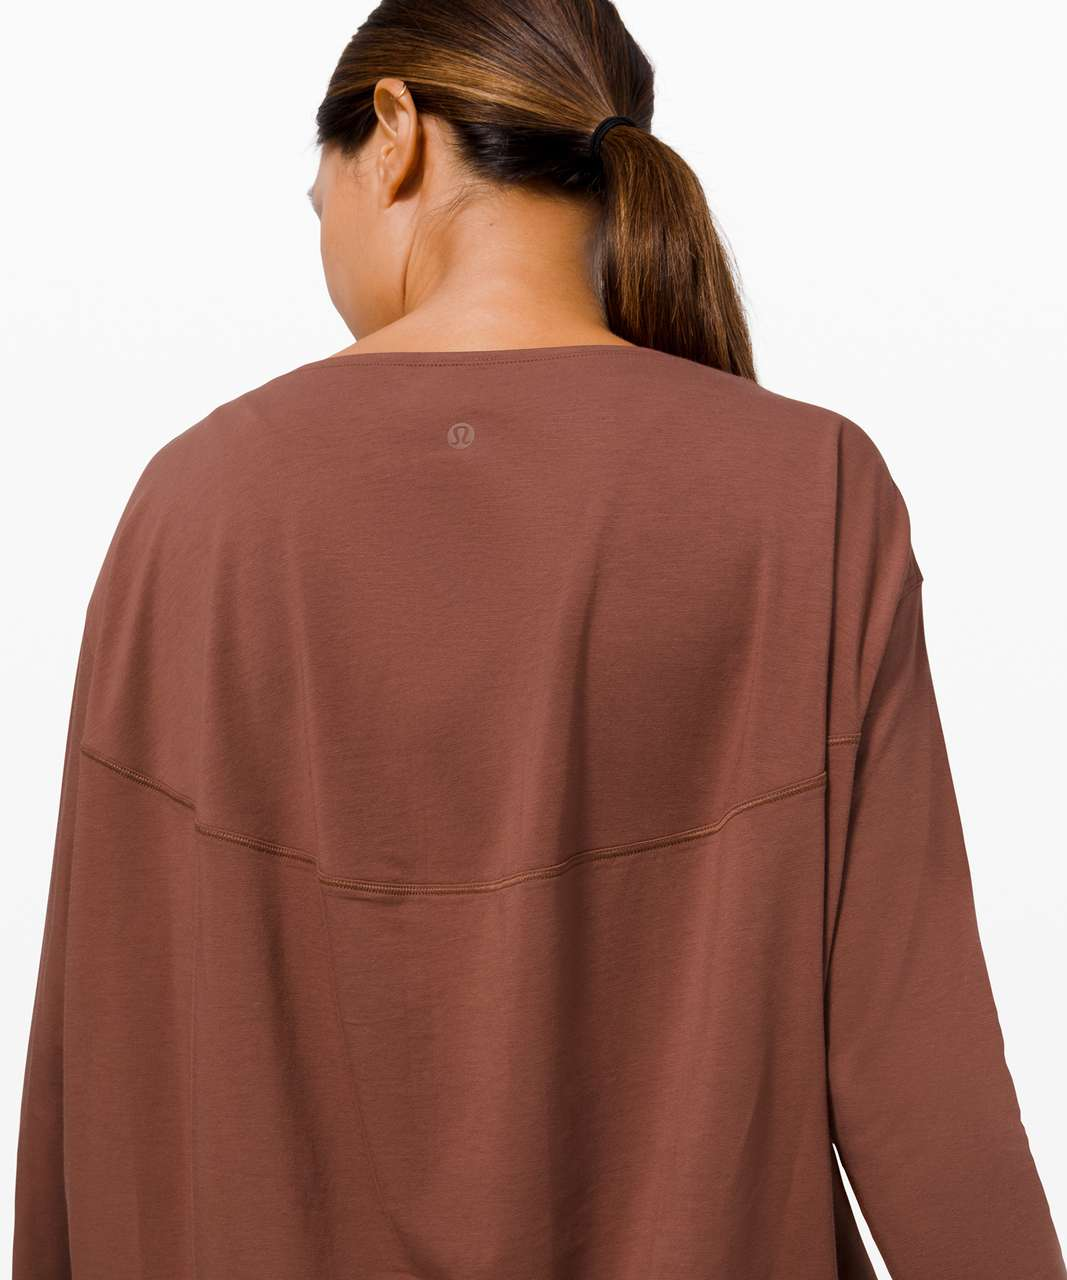 Lululemon Back In Action Long Sleeve - Ancient Copper